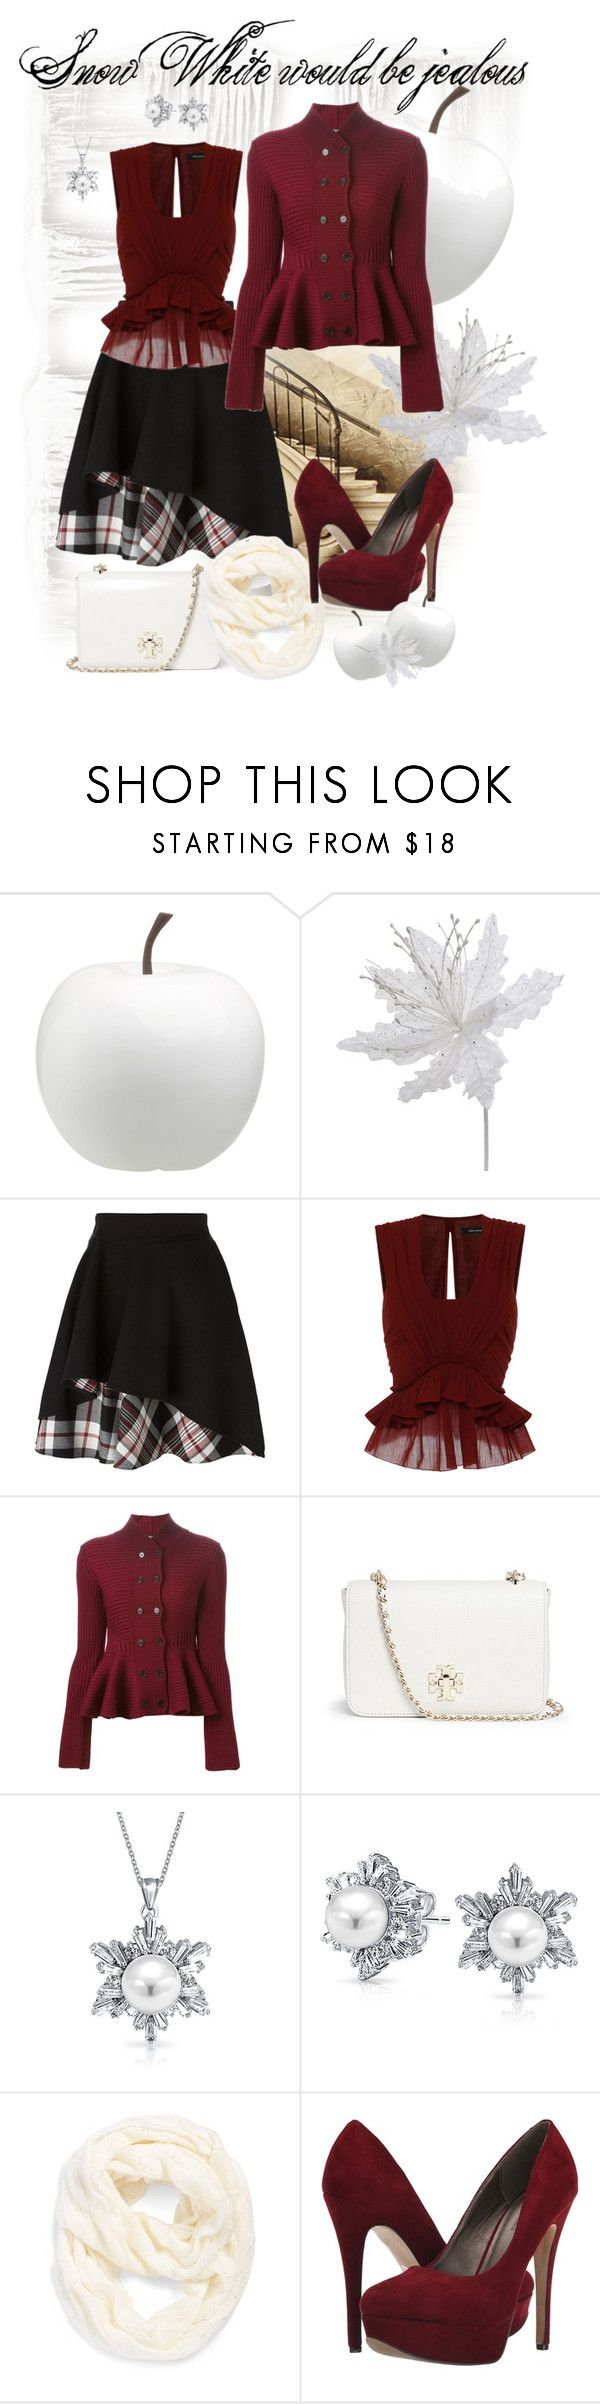 """""""Snow White would be jealous"""" by julyralewis ❤ liked on Polyvore featuring CB2, Alexander McQueen, Isabel Marant, Tory Burch, Bling Jewelry, Echo, Michael Antonio, women's clothing, women's fashion and women"""